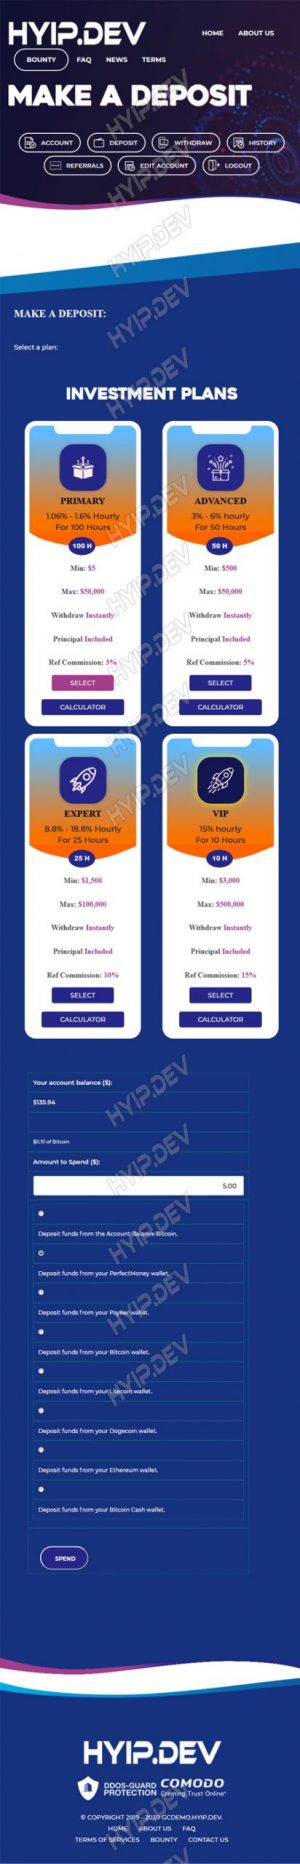 goldcoders hyip template no. 151, mobile page screenshot